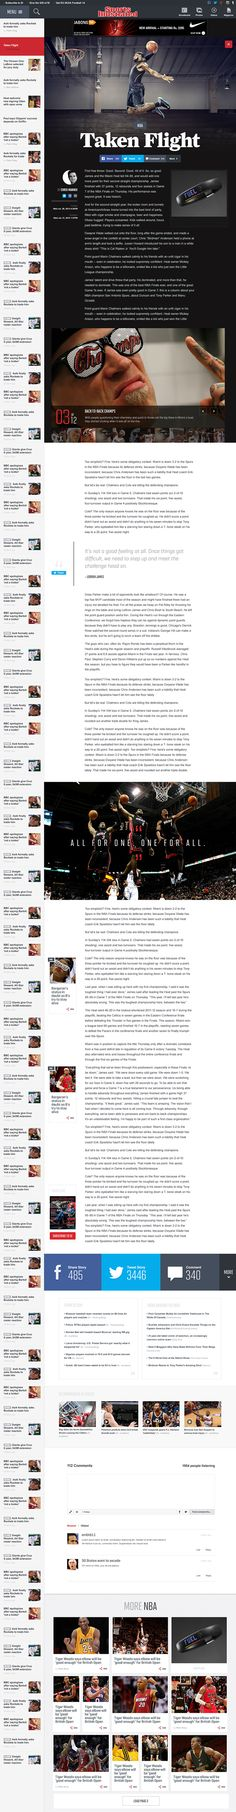 Sports Illustrated by FI // Hi Friends, look what I just found on #web #design! Make sure to follow us @moirestudiosjkt to see more pins like this | Moire Studios is a thriving website and graphic design studio based in Jakarta, Indonesia.